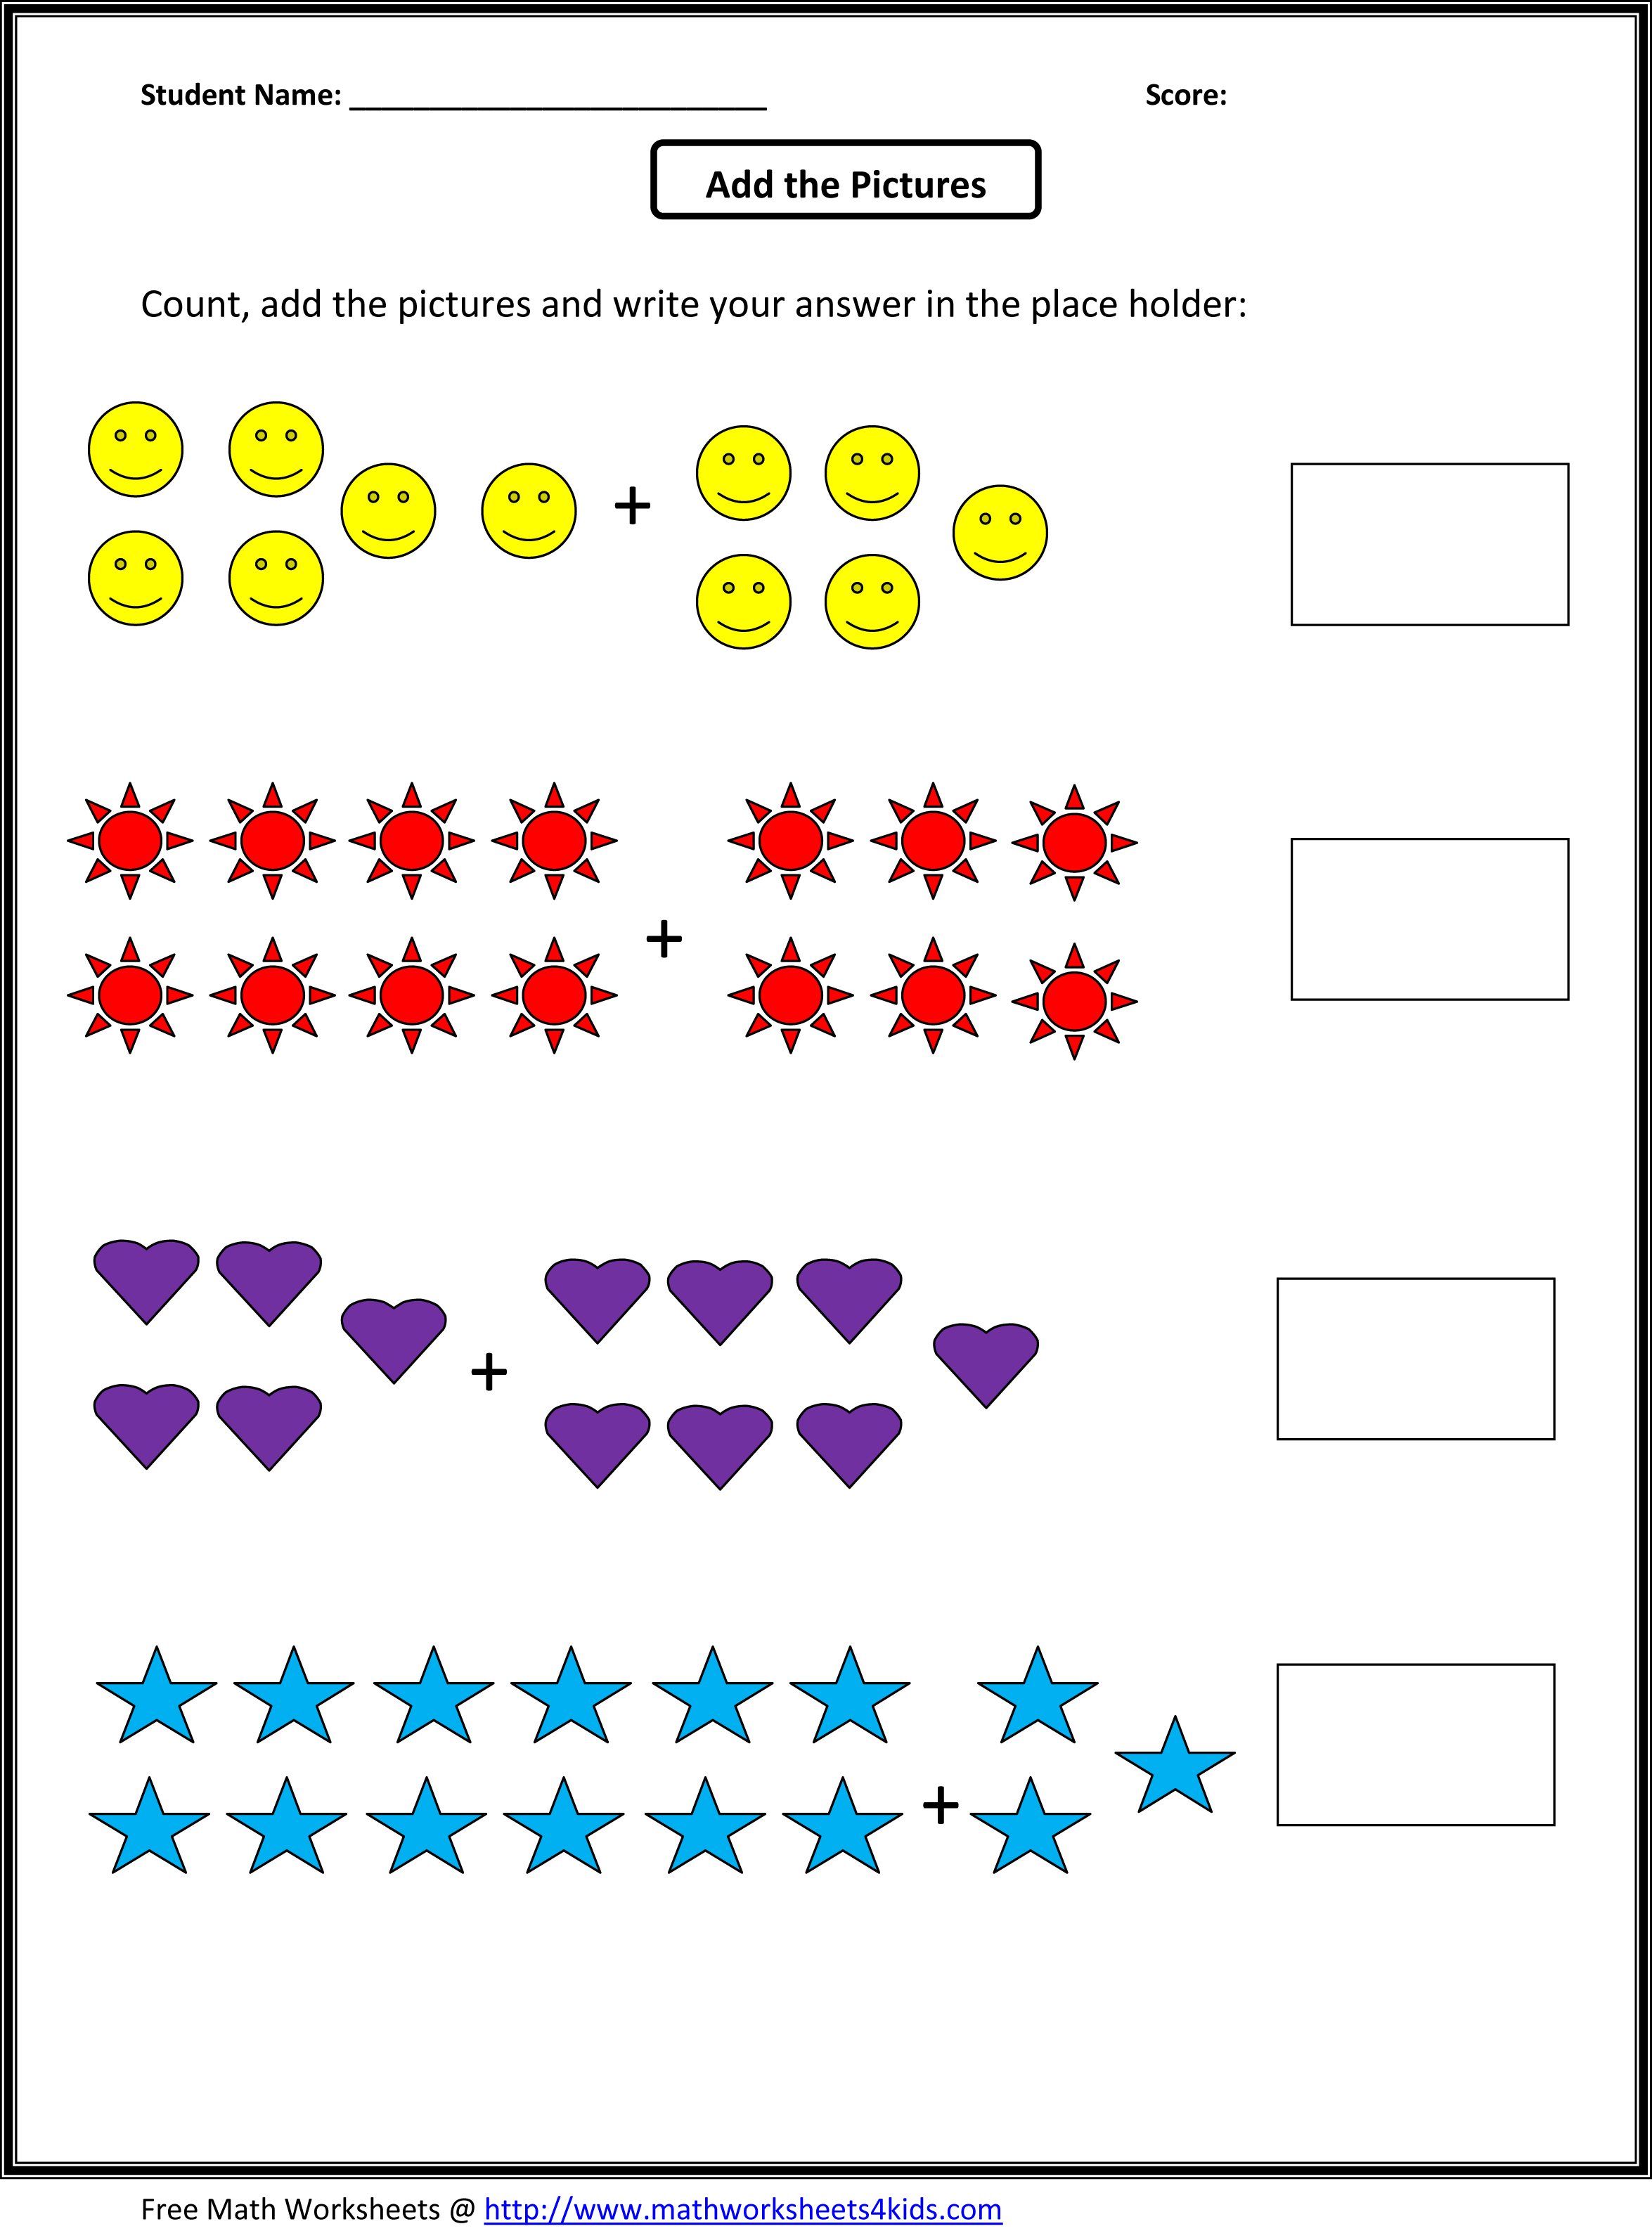 Weirdmailus  Nice Grade  Maths Worksheet  Reocurent With Remarkable Math Worksheets For St Grade Free  Reocurent With Enchanting Measuring Scales Worksheet Also Following Simple Directions Worksheets In Addition Super Duper Teacher Worksheets And Grade  Eqao Worksheets As Well As Addition Facts To  Worksheet Additionally Kinder Worksheets Math From Reocurentcom With Weirdmailus  Remarkable Grade  Maths Worksheet  Reocurent With Enchanting Math Worksheets For St Grade Free  Reocurent And Nice Measuring Scales Worksheet Also Following Simple Directions Worksheets In Addition Super Duper Teacher Worksheets From Reocurentcom